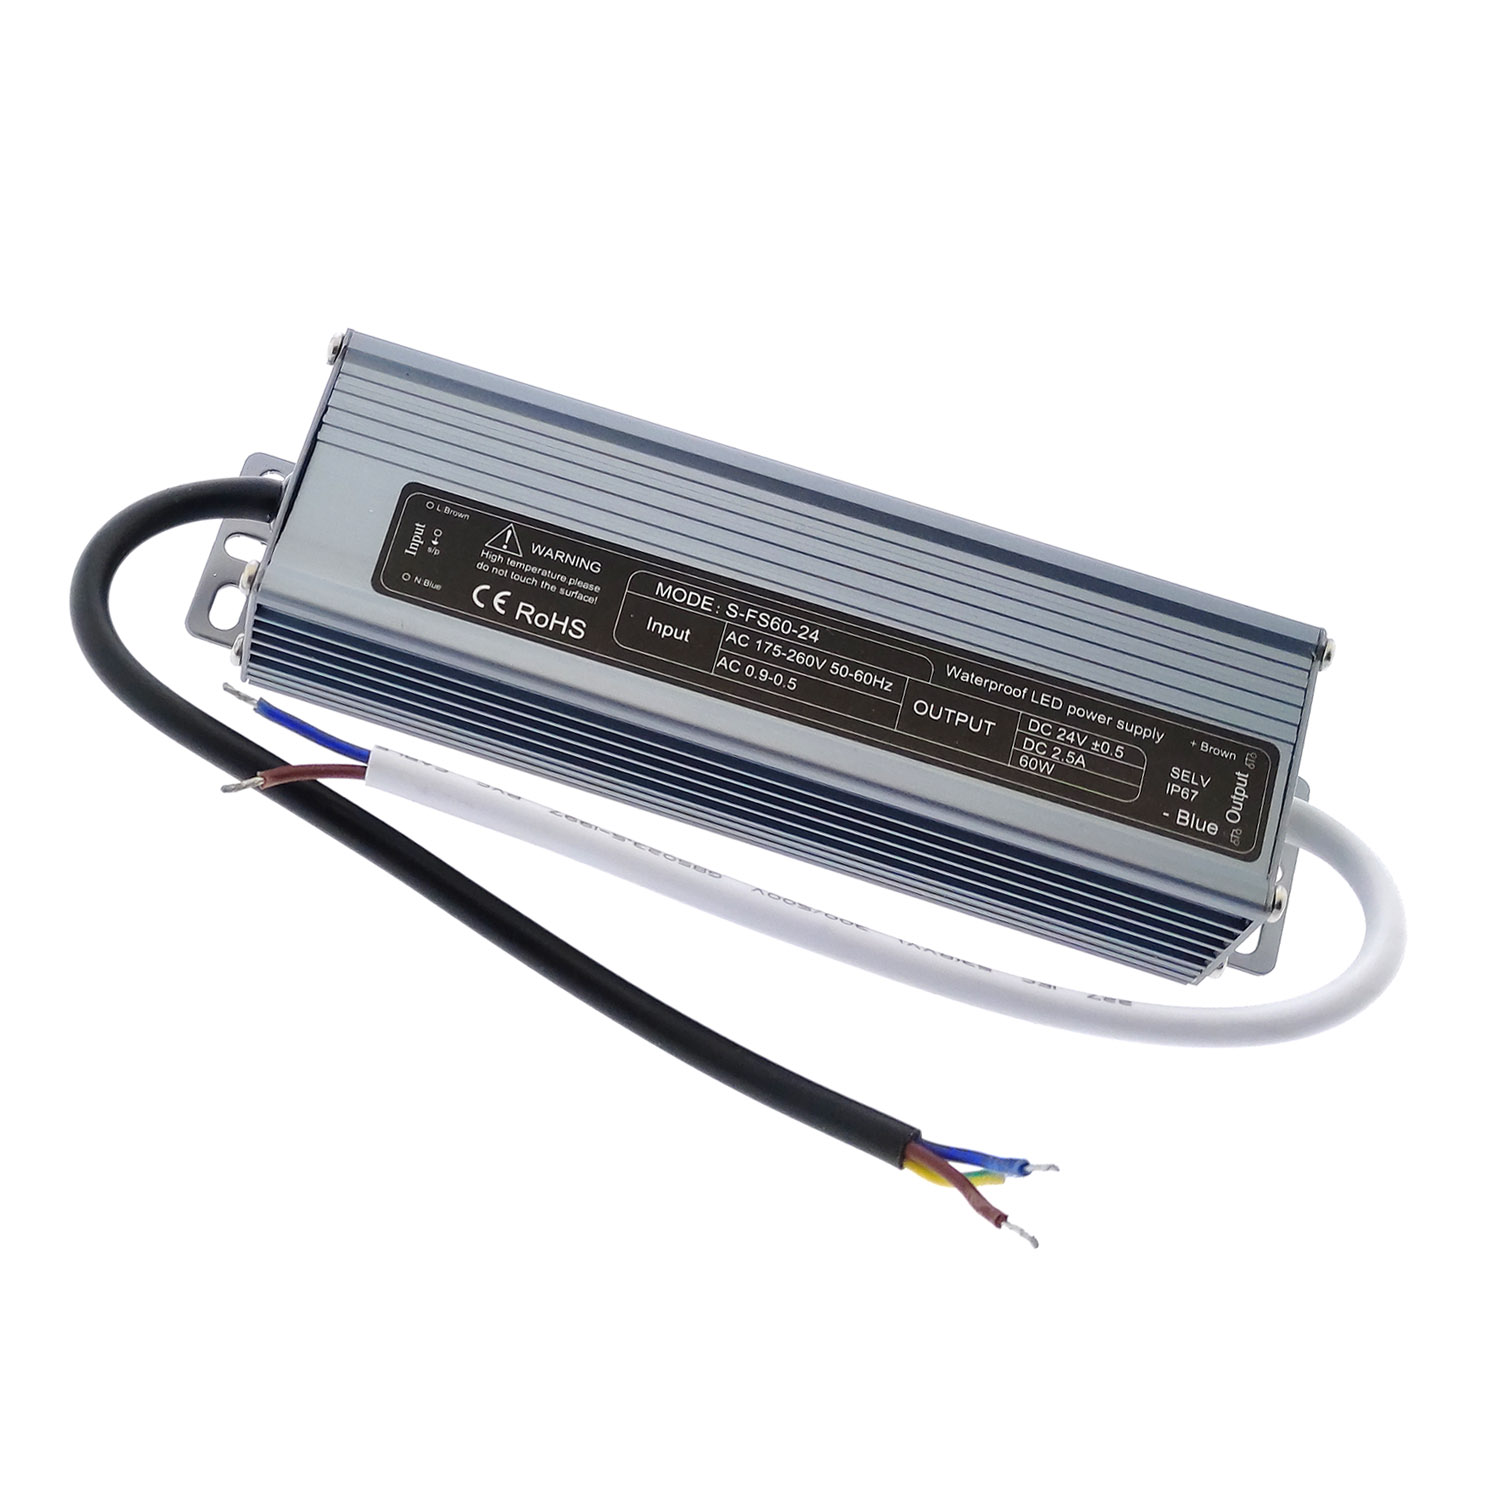 24V/60W/2.5A LED power source